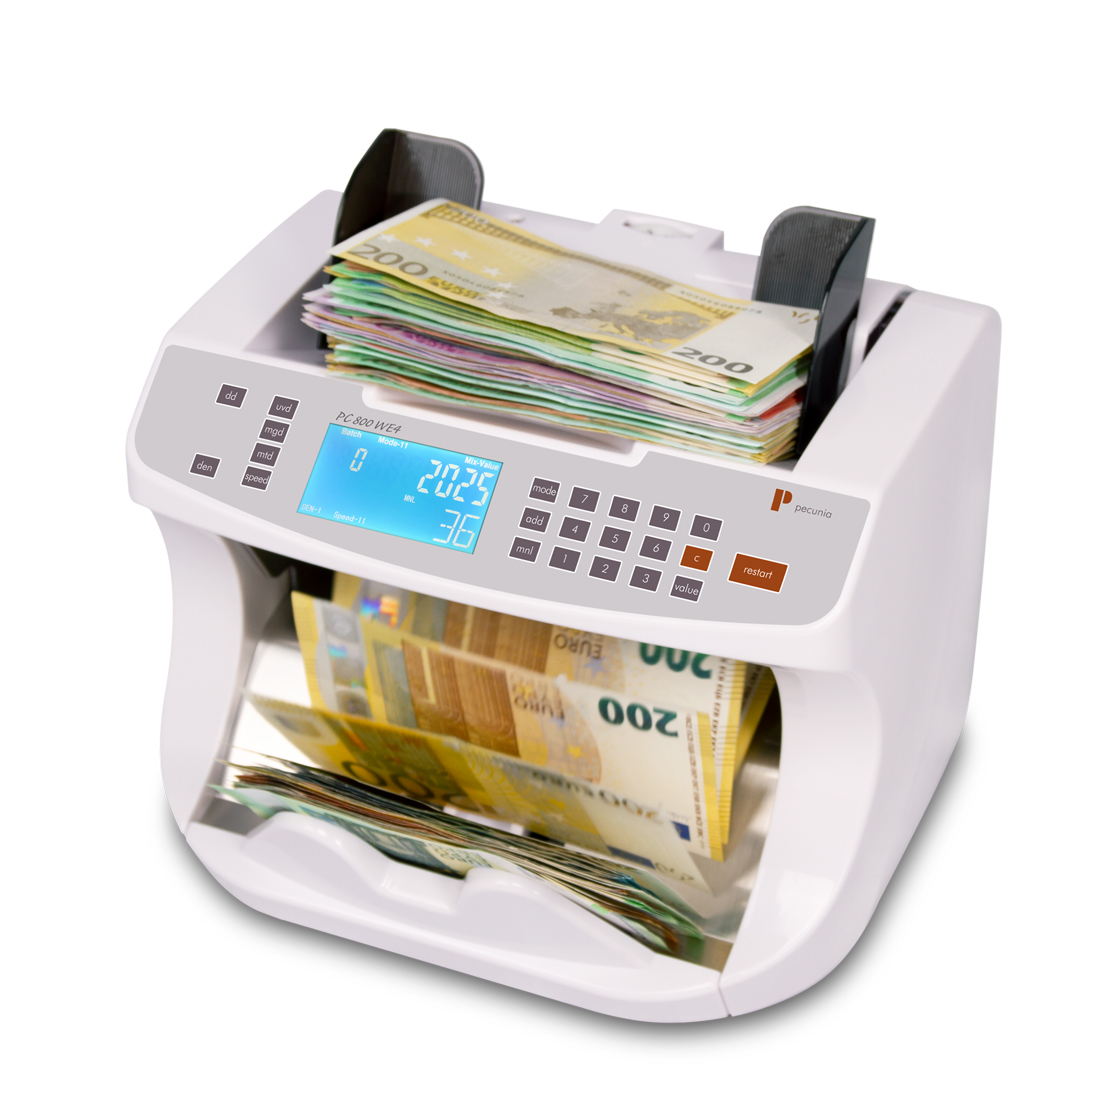 Banknote counters Pecunia PC 800 WE4